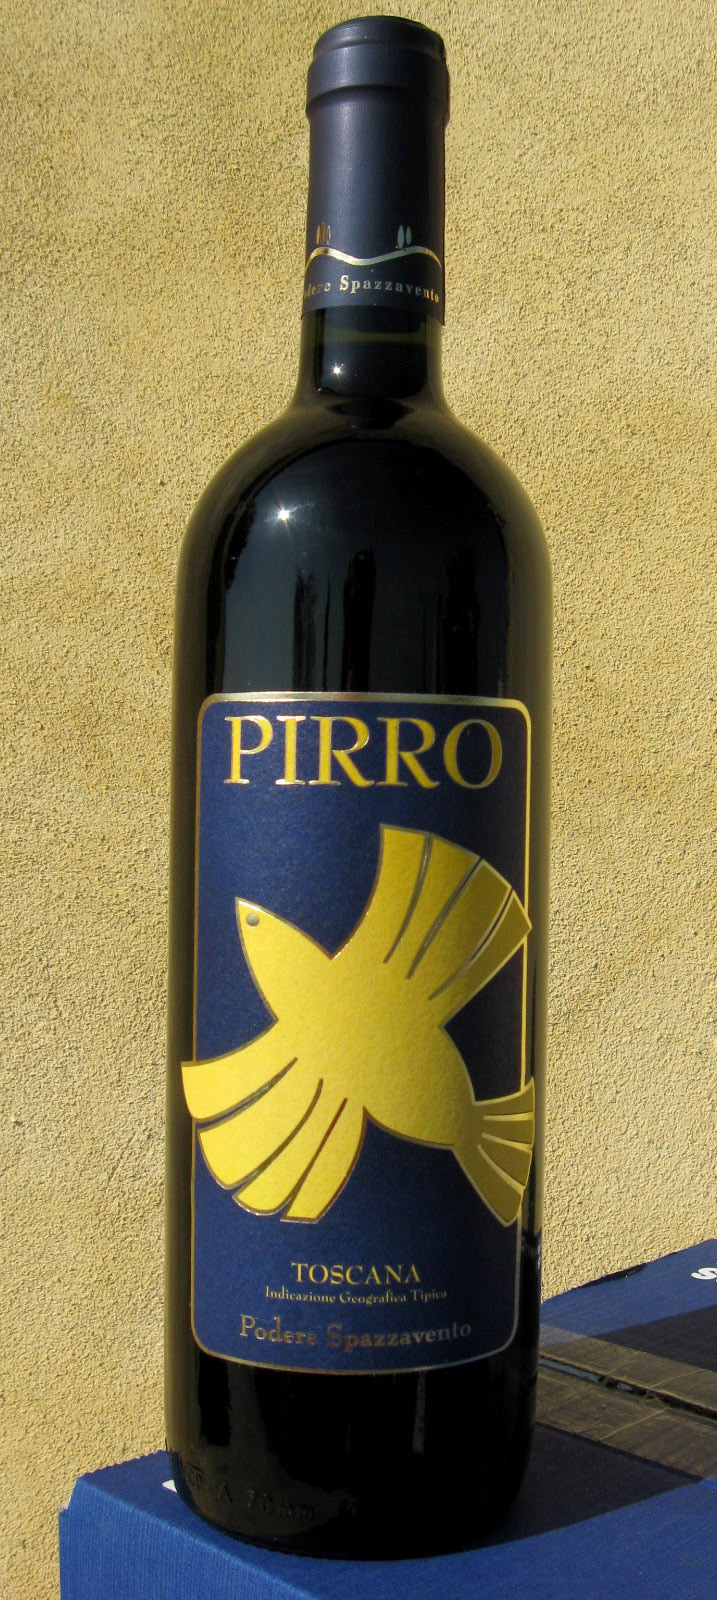 Pirro IGT Rosso - Podere Spazzavento